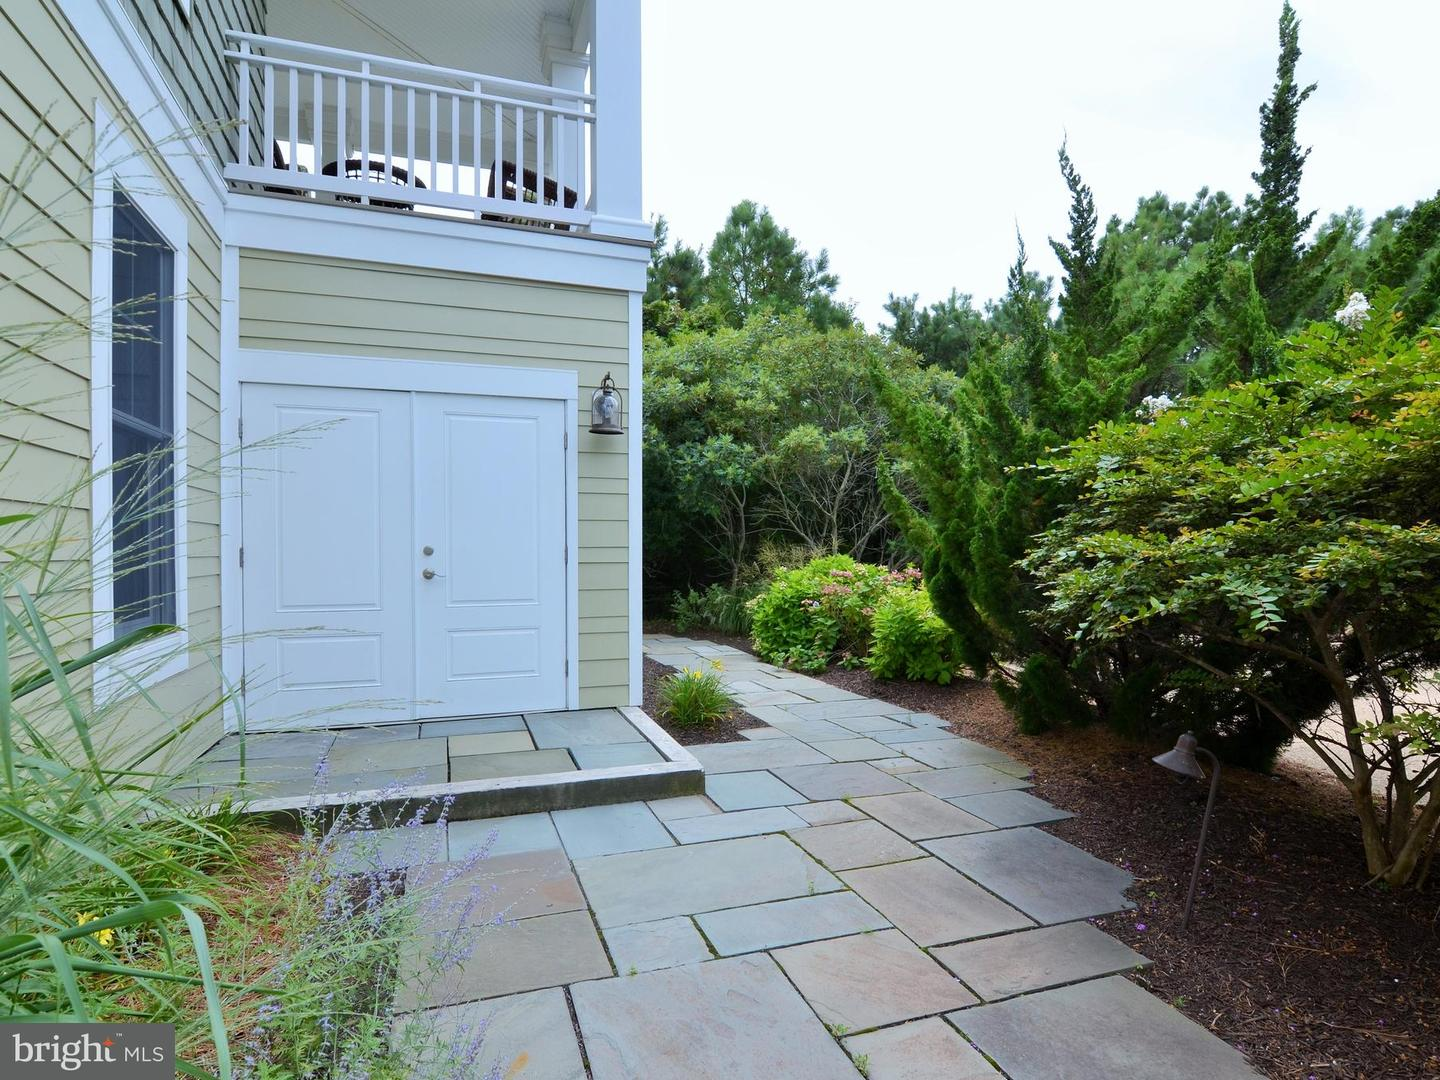 1002293530-300500804873-2018-09-25-15-08-24 31 Hall Ave | Rehoboth Beach, DE Real Estate For Sale | MLS# 1002293530  - Jack Lingo REALTOR